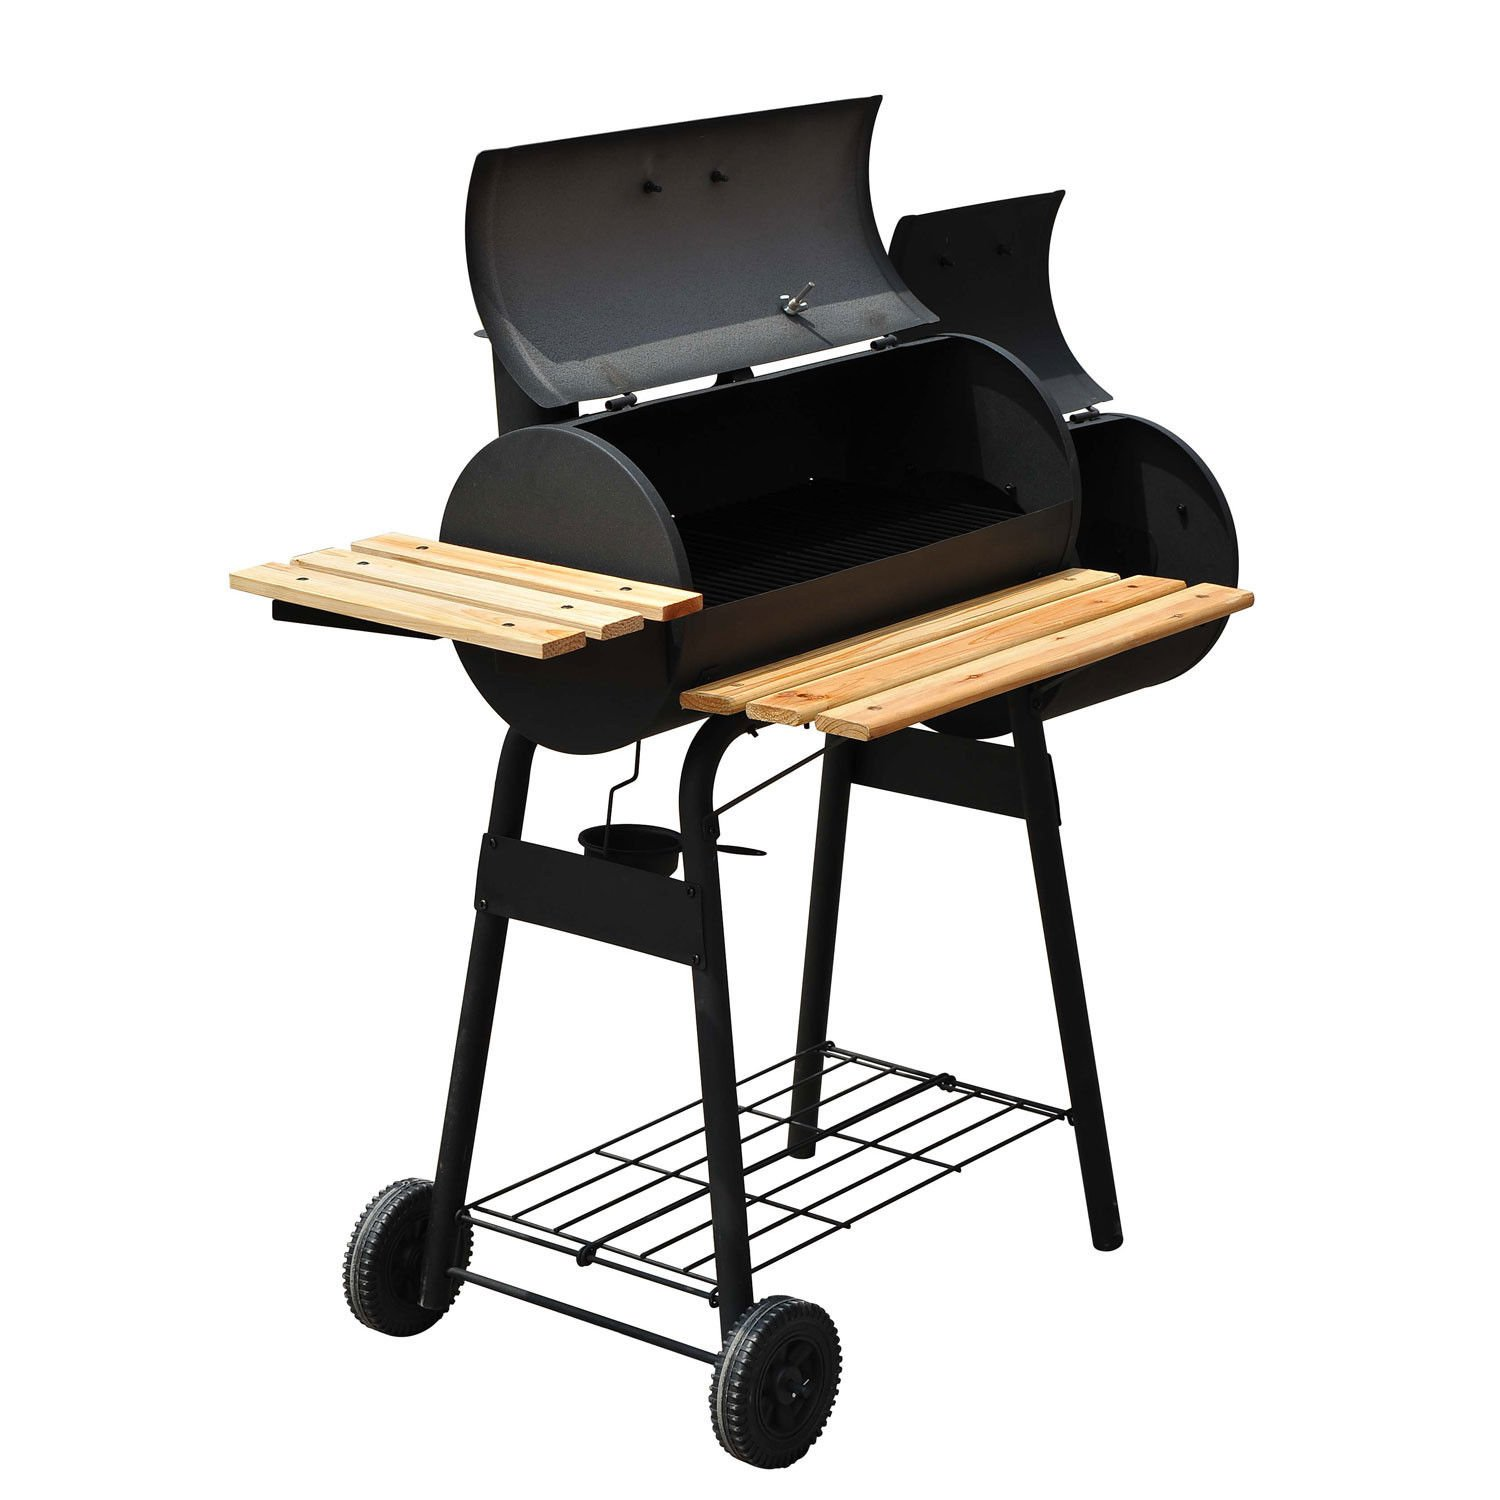 48'' BBQ Grill Charcoal Barbecue Patio Backyard Home Meat Cooker Smoker